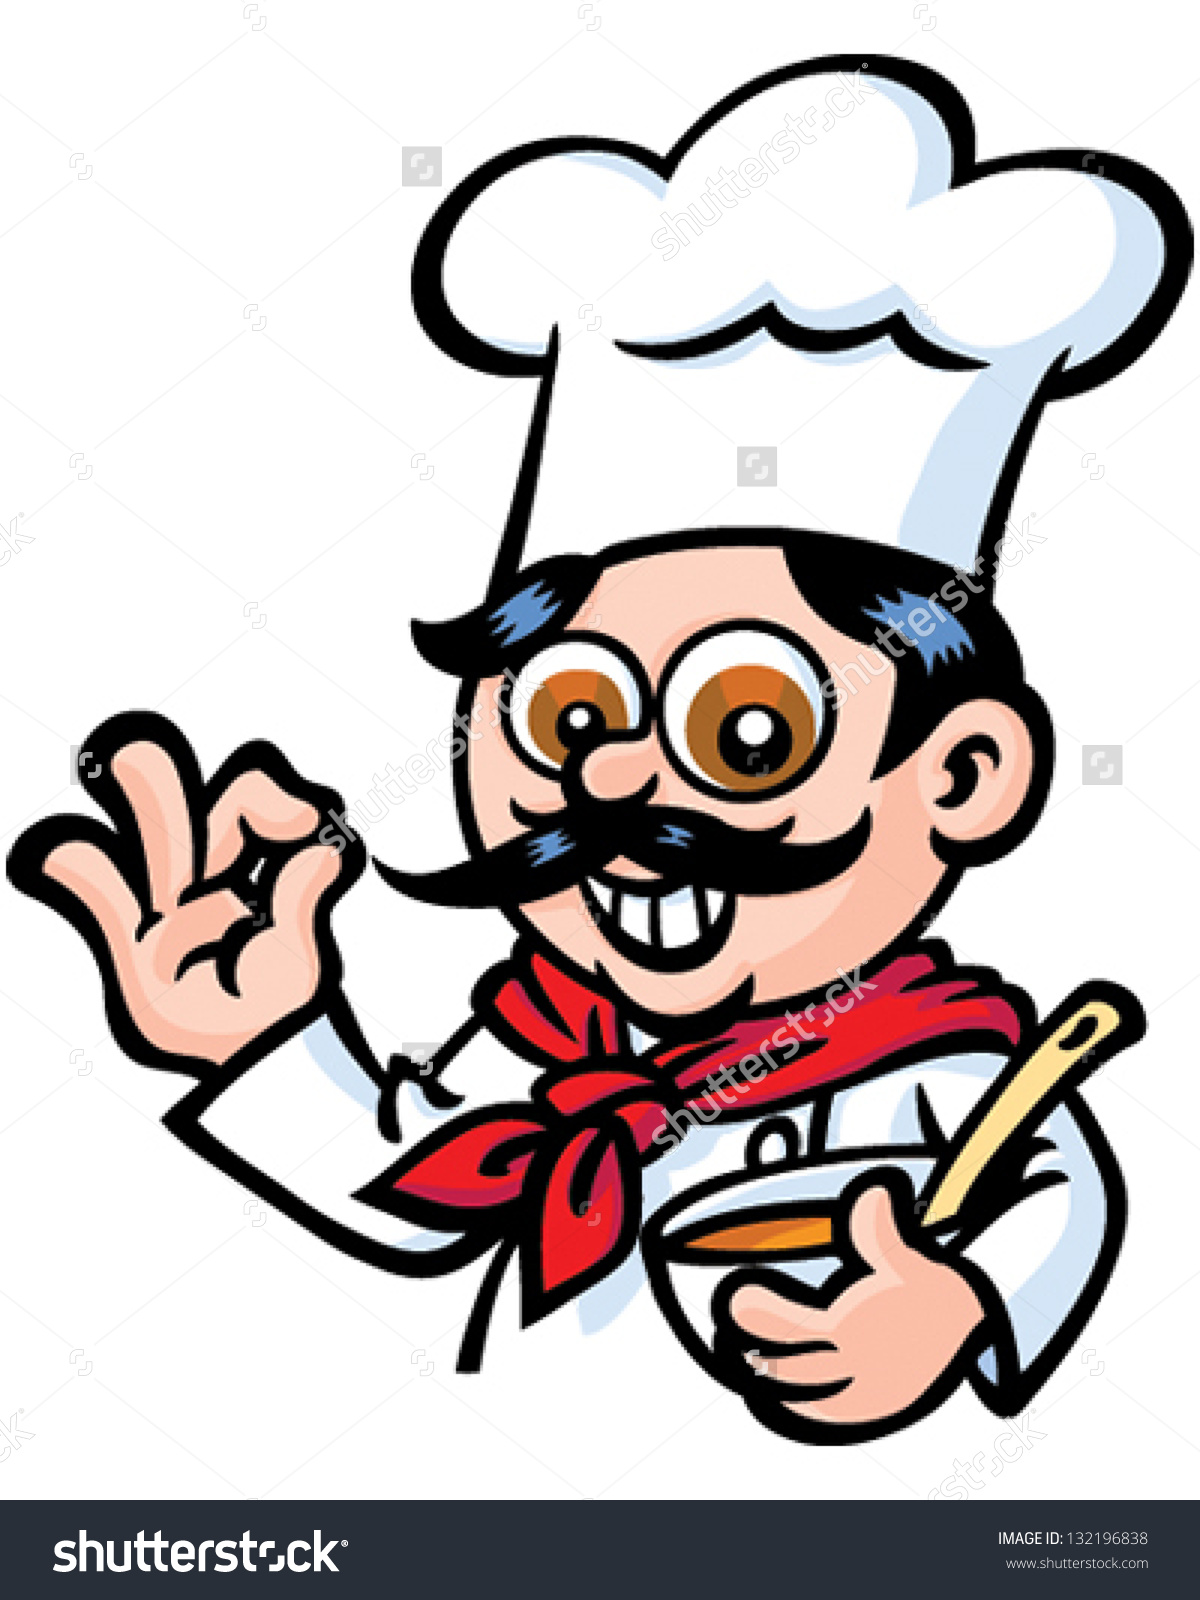 Mr chef clipart svg royalty free download Mr Chef Stock Vector 132196838 - Shutterstock svg royalty free download